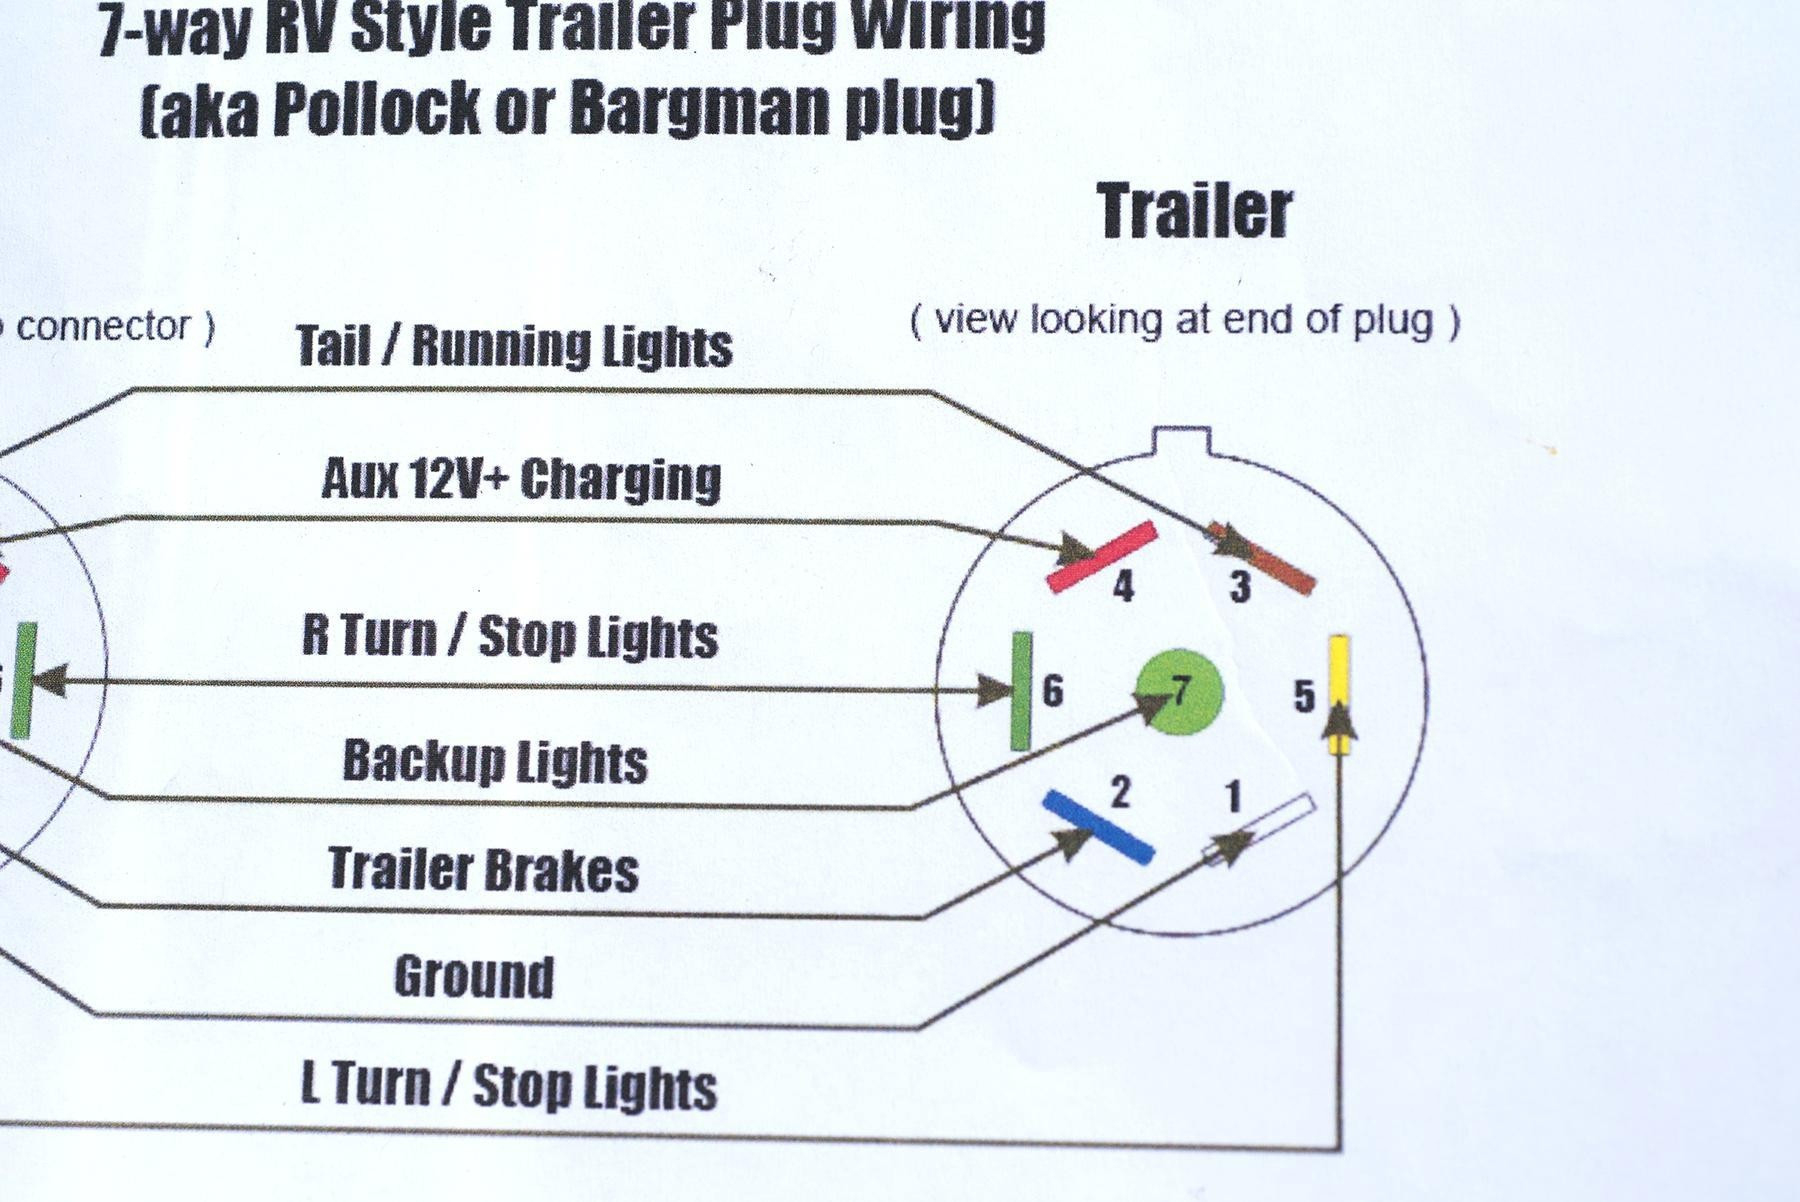 Trailer Brake Wiring Diagram 7 Way | Wiring Diagram - Trailer Wiring Diagram With Brakes